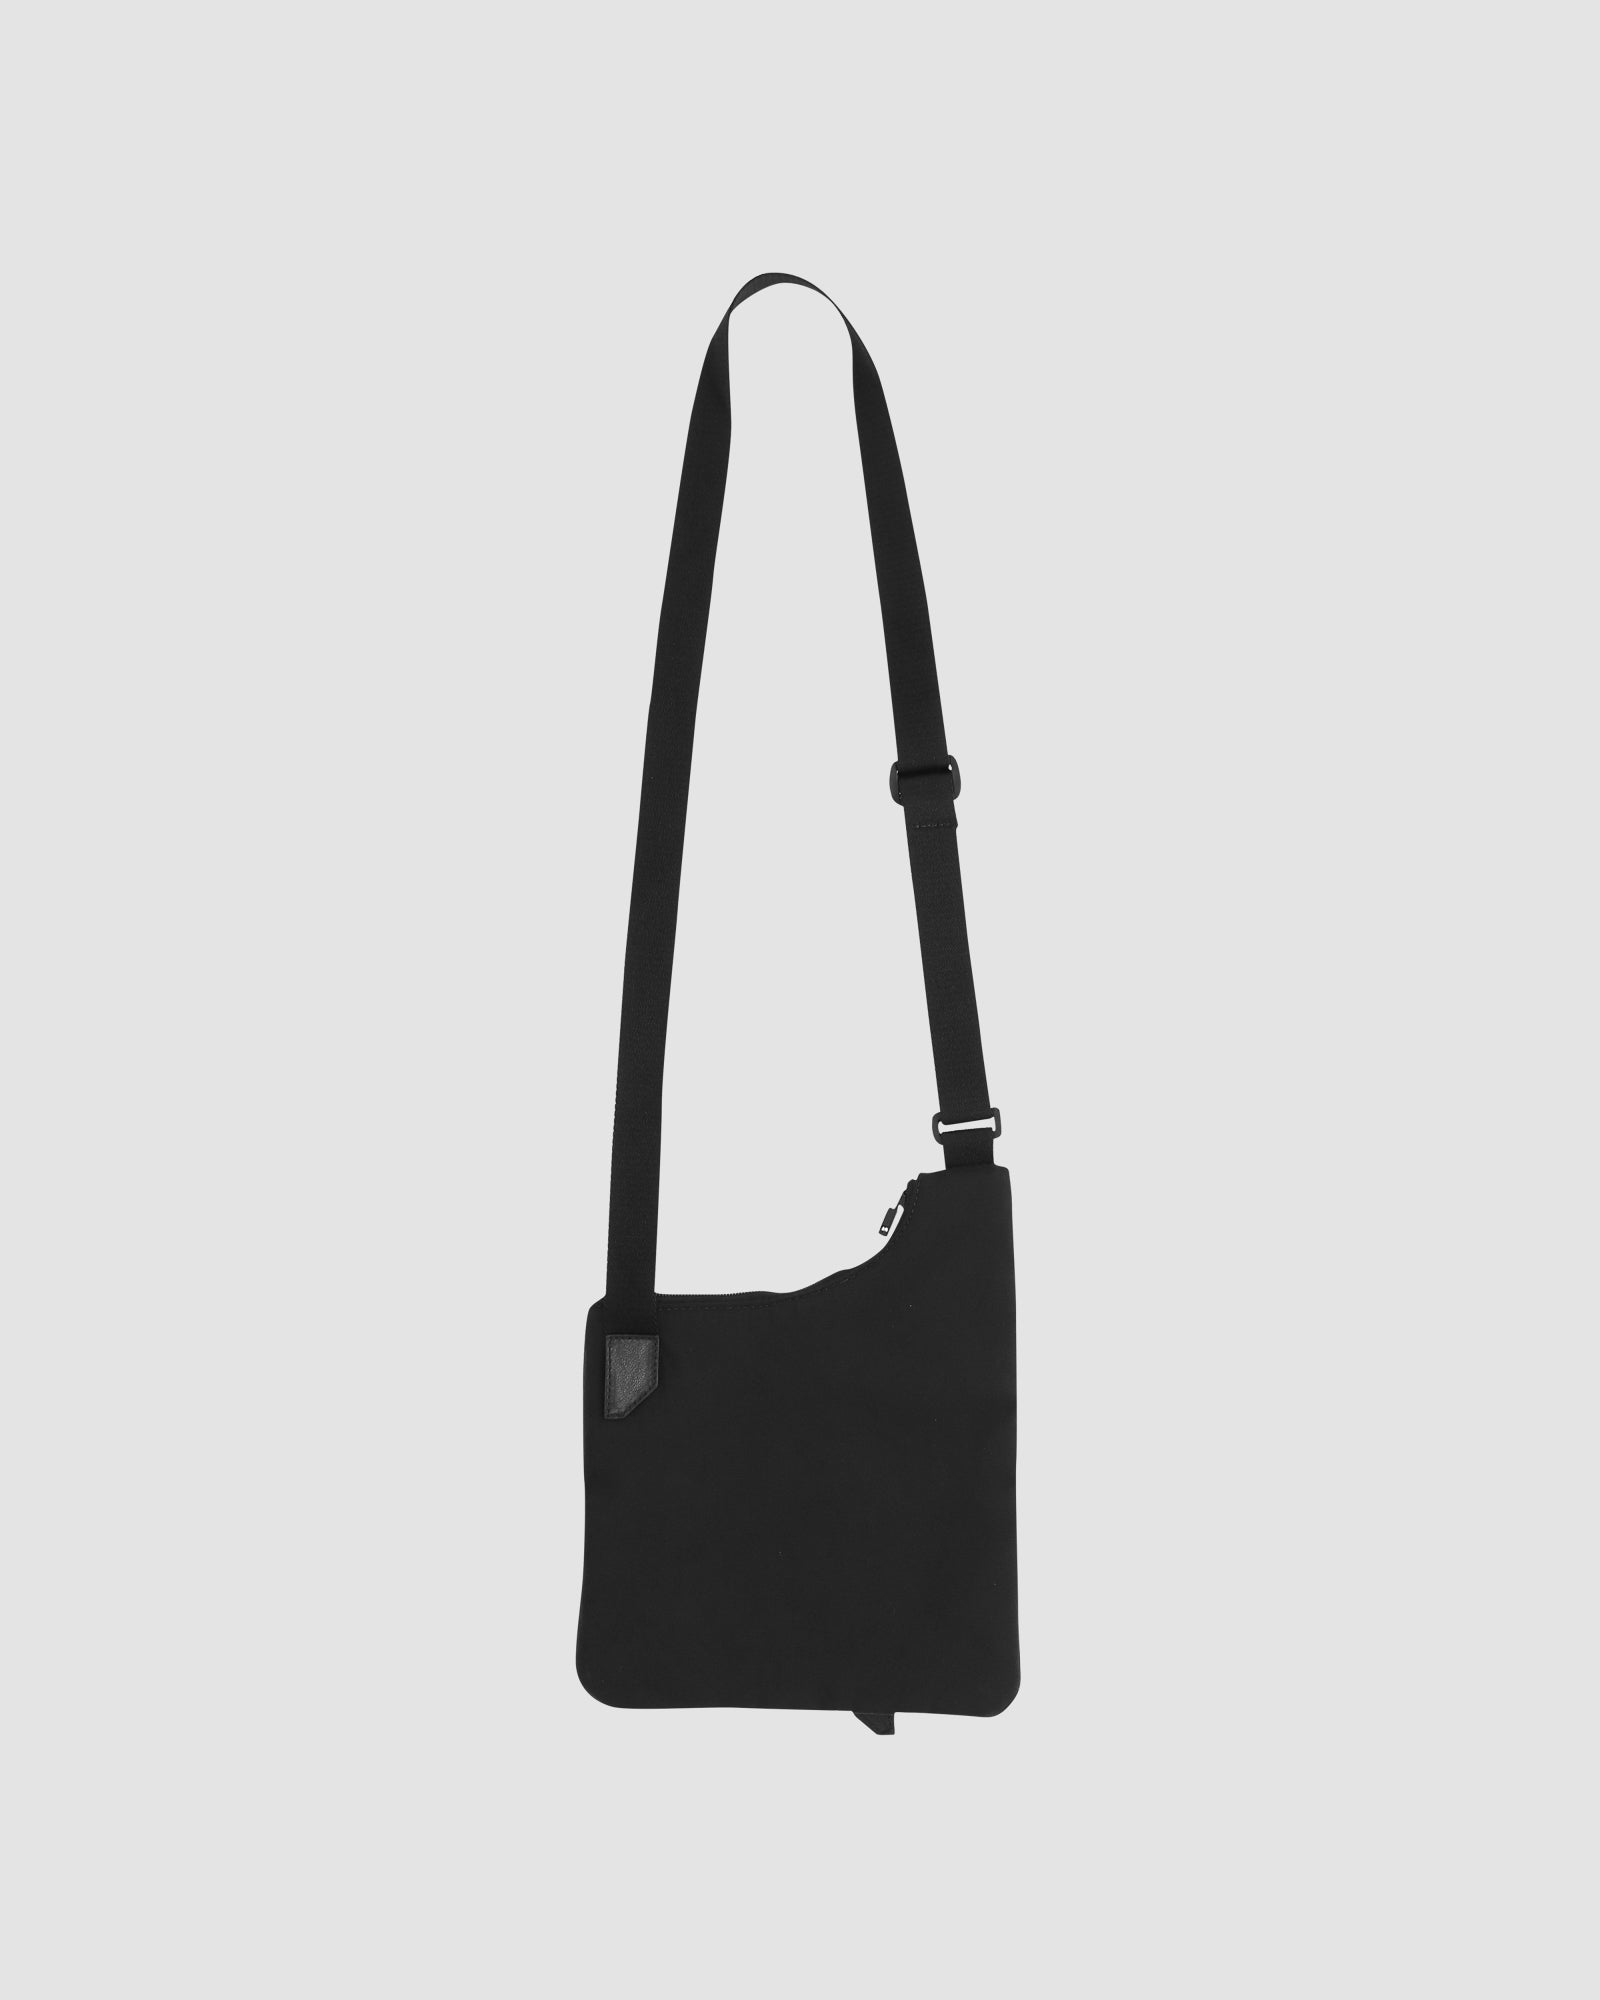 1017 ALYX 9SM | ASYMETRICAL FLAT POUCH | Bag | Accessories, Bag Online, Bags, BLACK, Google Shopping, Man, S20, S20 Drop II, SHOULDER BAGS, UNISEX, Woman